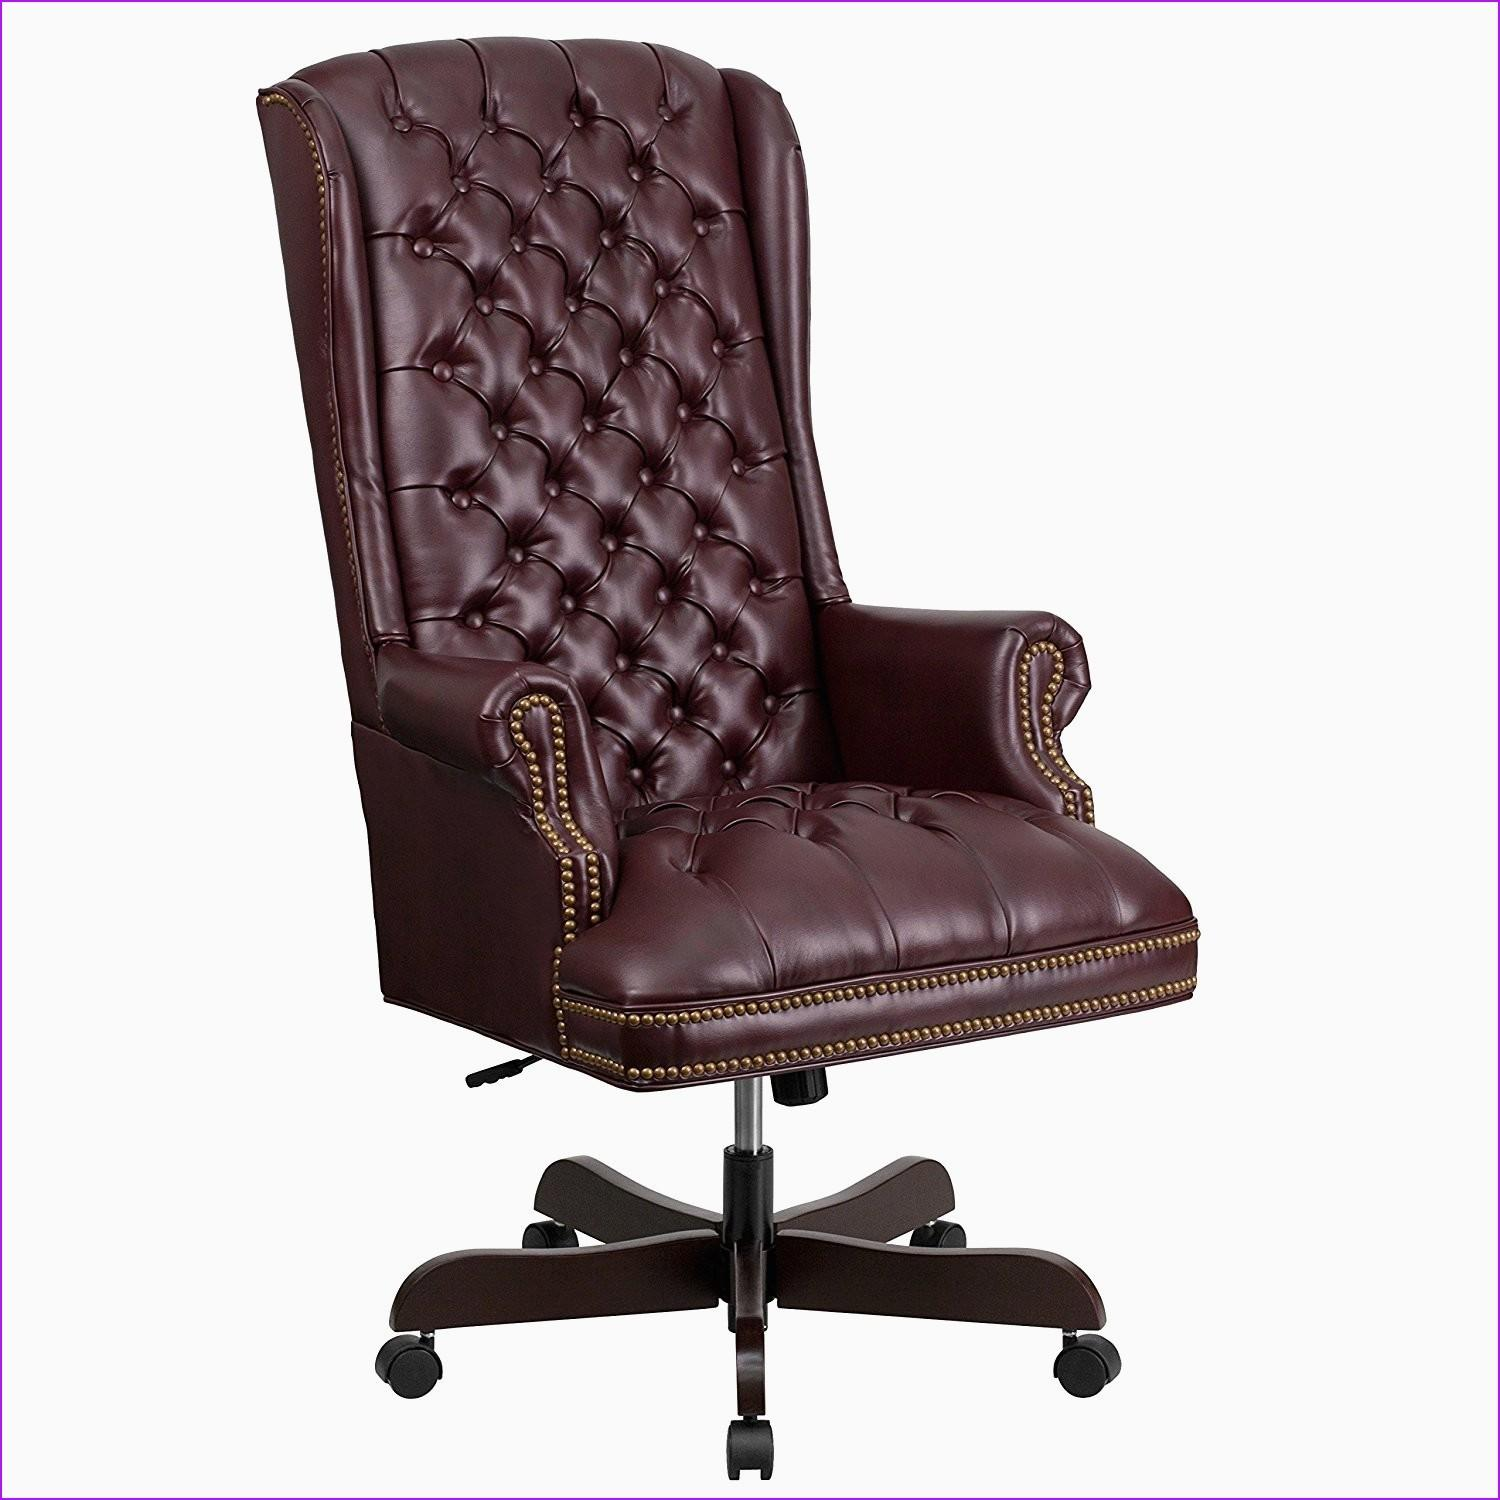 Office Chair Black Friday Home Interior Eksterior